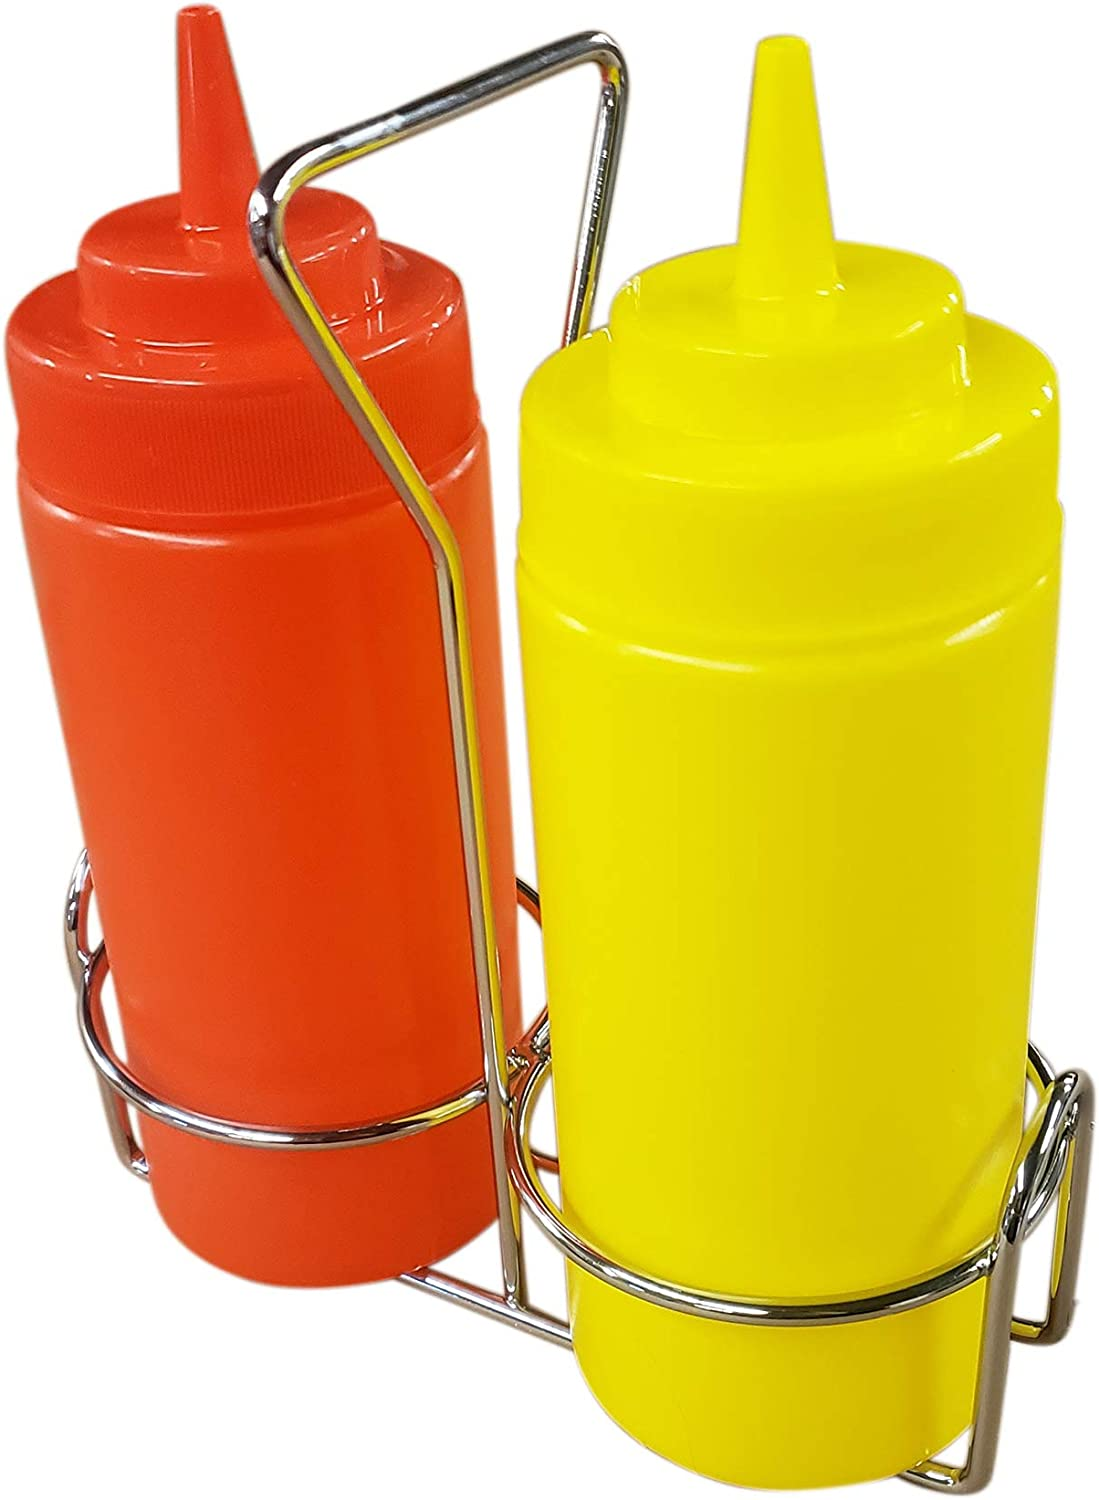 Ketchup and Mustard Squeeze Bottle Set with Caddy, 16oz